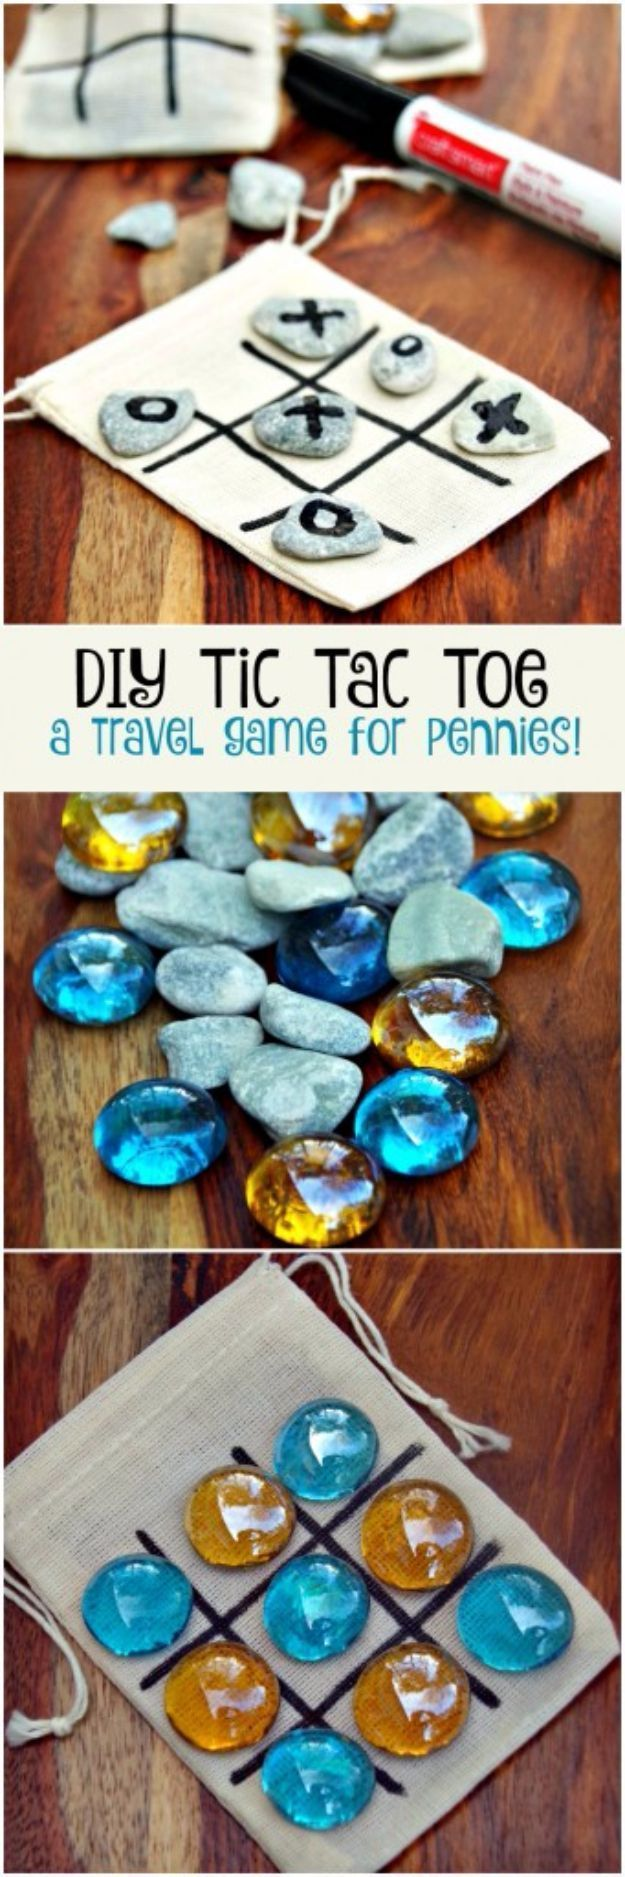 39 Easiest Dollar Store Crafts Ever - DIY Tic Tac Toe Game Board - Quick And Cheap Crafts To Make, Dollar Store Craft Ideas To Make And Sell, Cute Dollar Store Do It Yourself Projects, Cheap Craft Ideas, Dollar Sore Decor, Creative Dollar Store Crafts http://diyjoy.com/easy-dollar-store-crafts #uniquecraftstosell